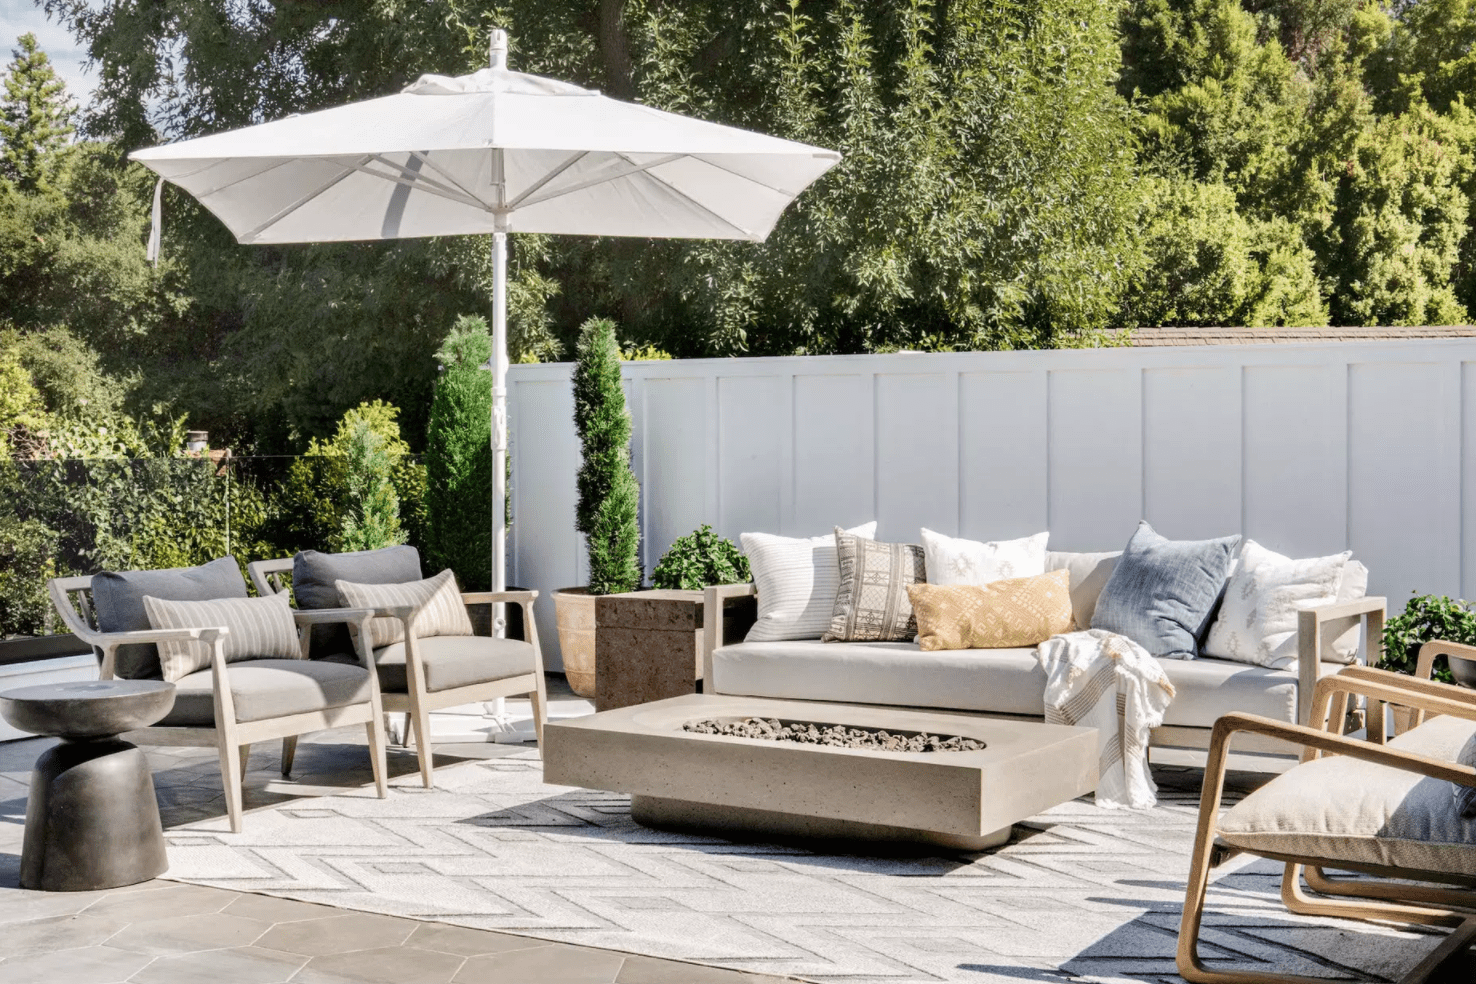 A deck decorated with plush chairs, an outdoor couch, and a large fire pit